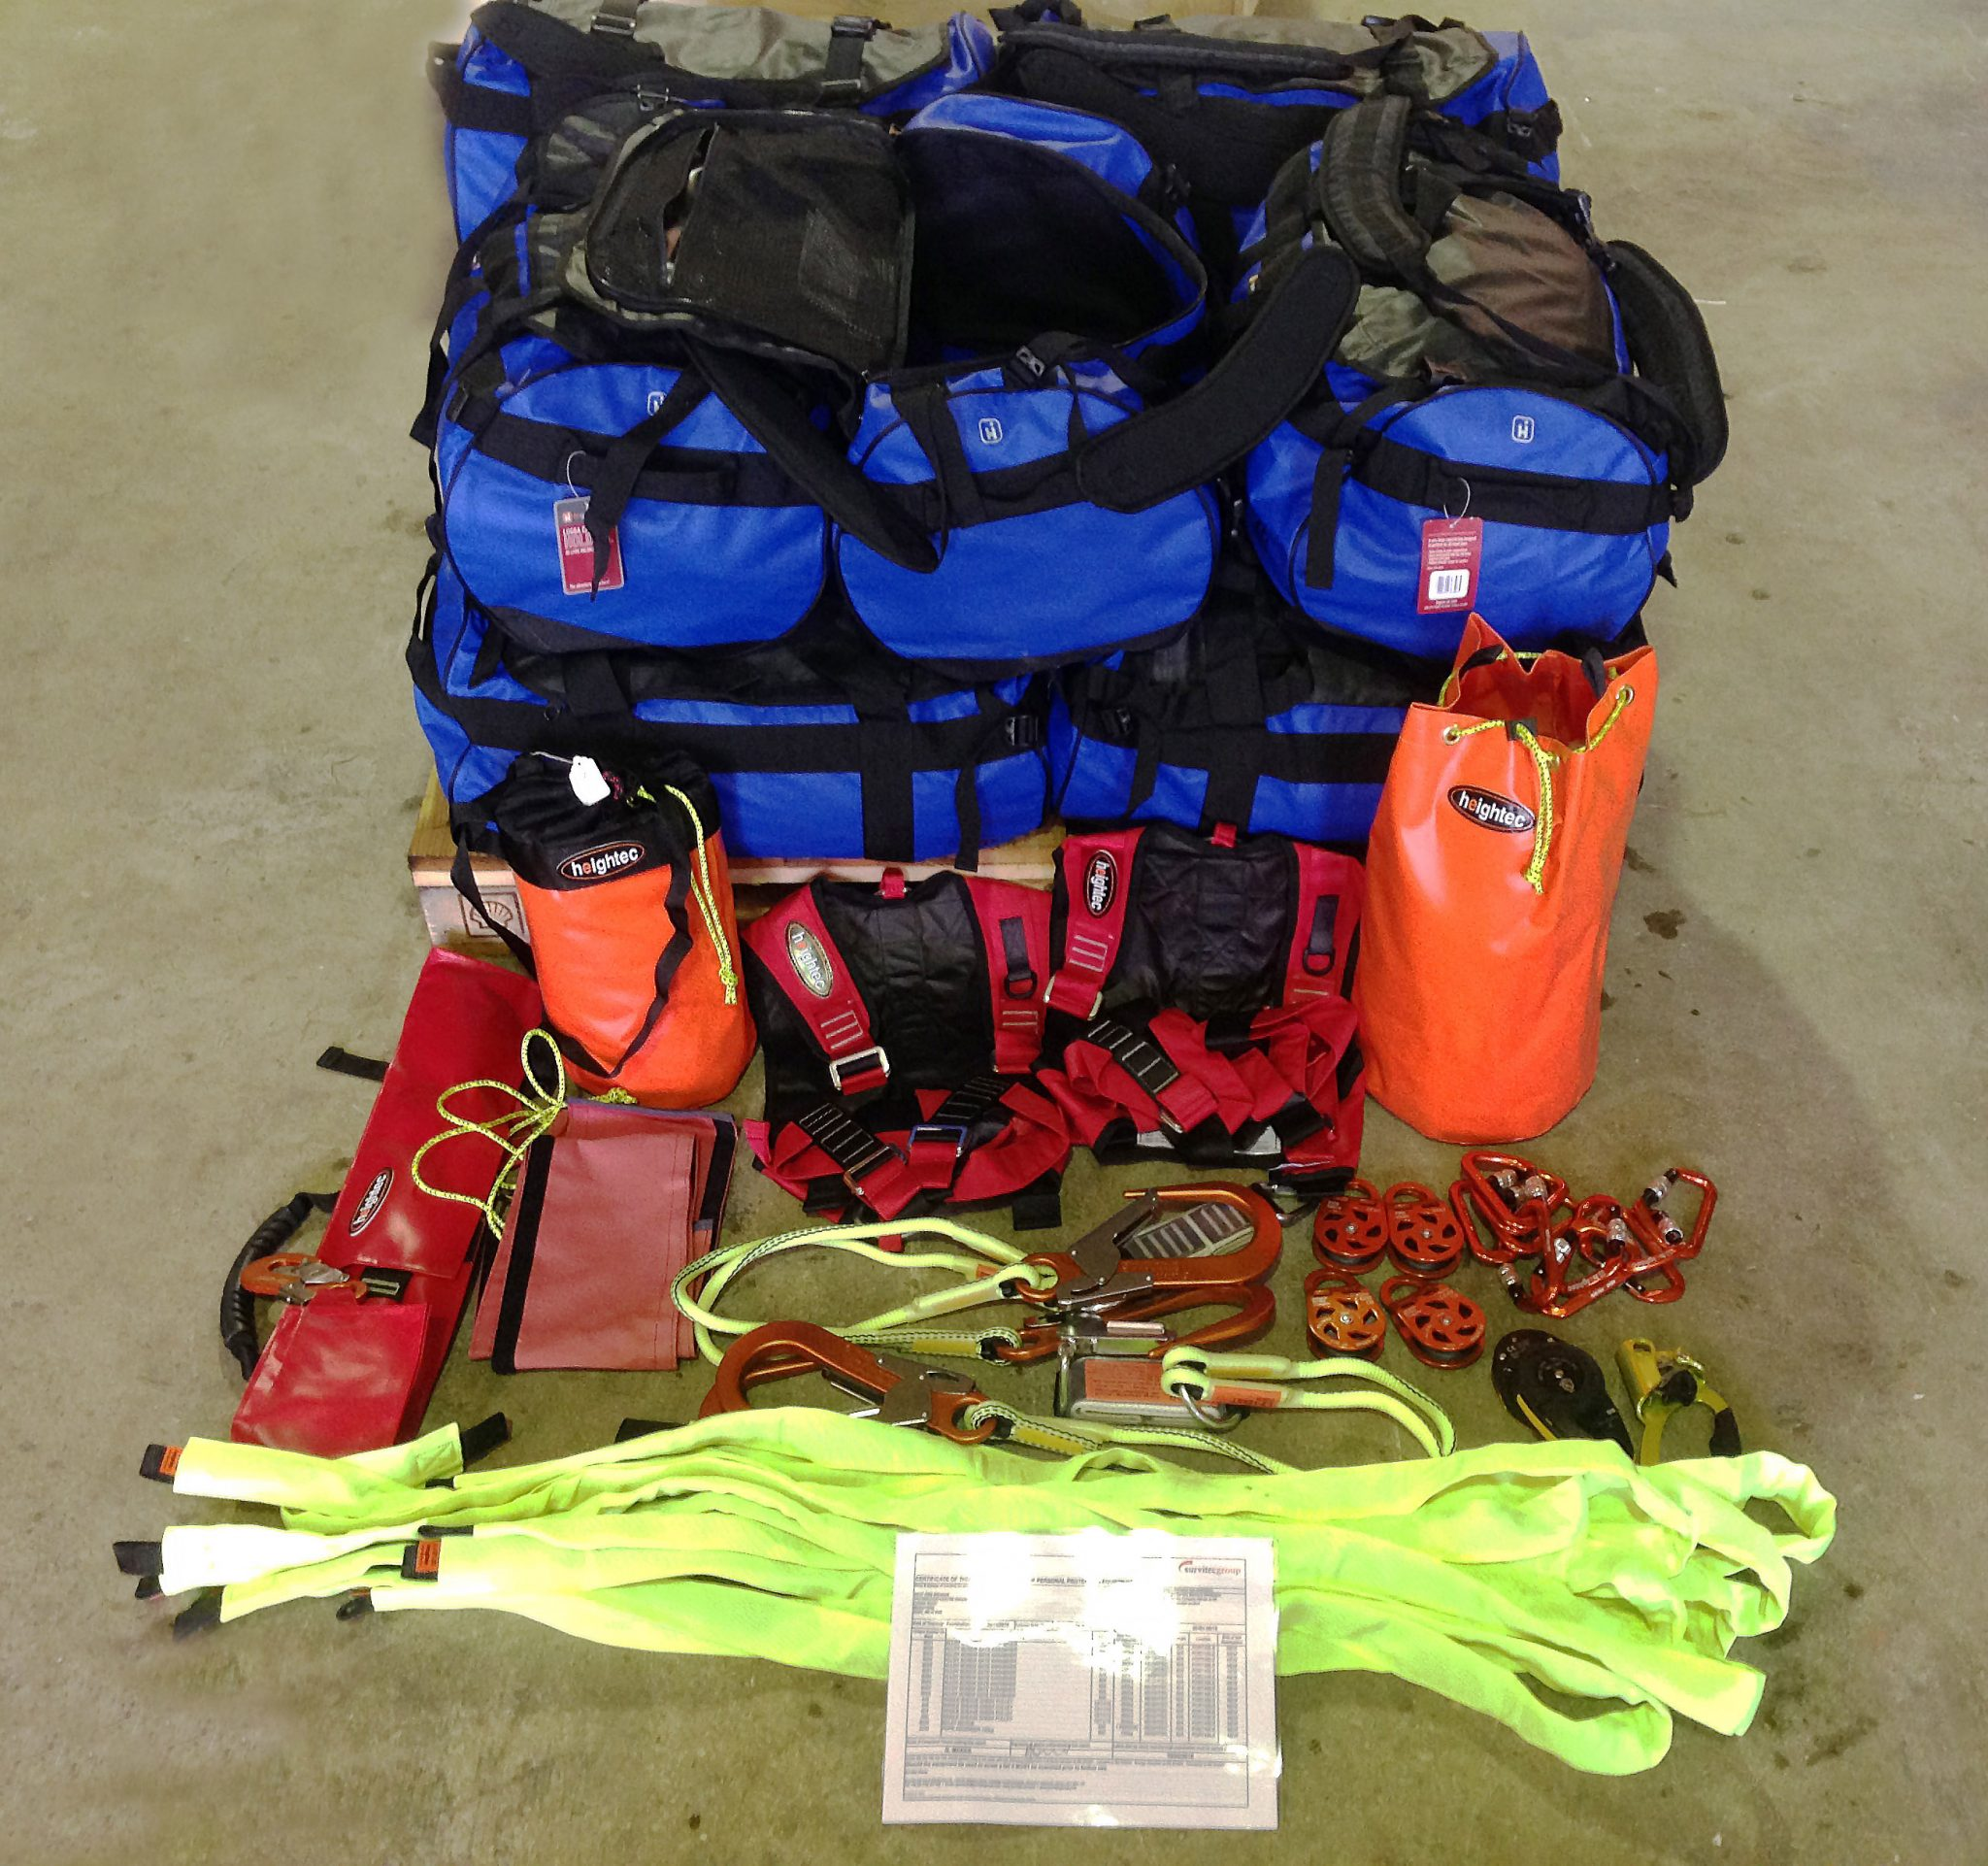 Survitec has supplied bespoke packs of safe access equipment to Kent FRS for use by fire crew when working at height.